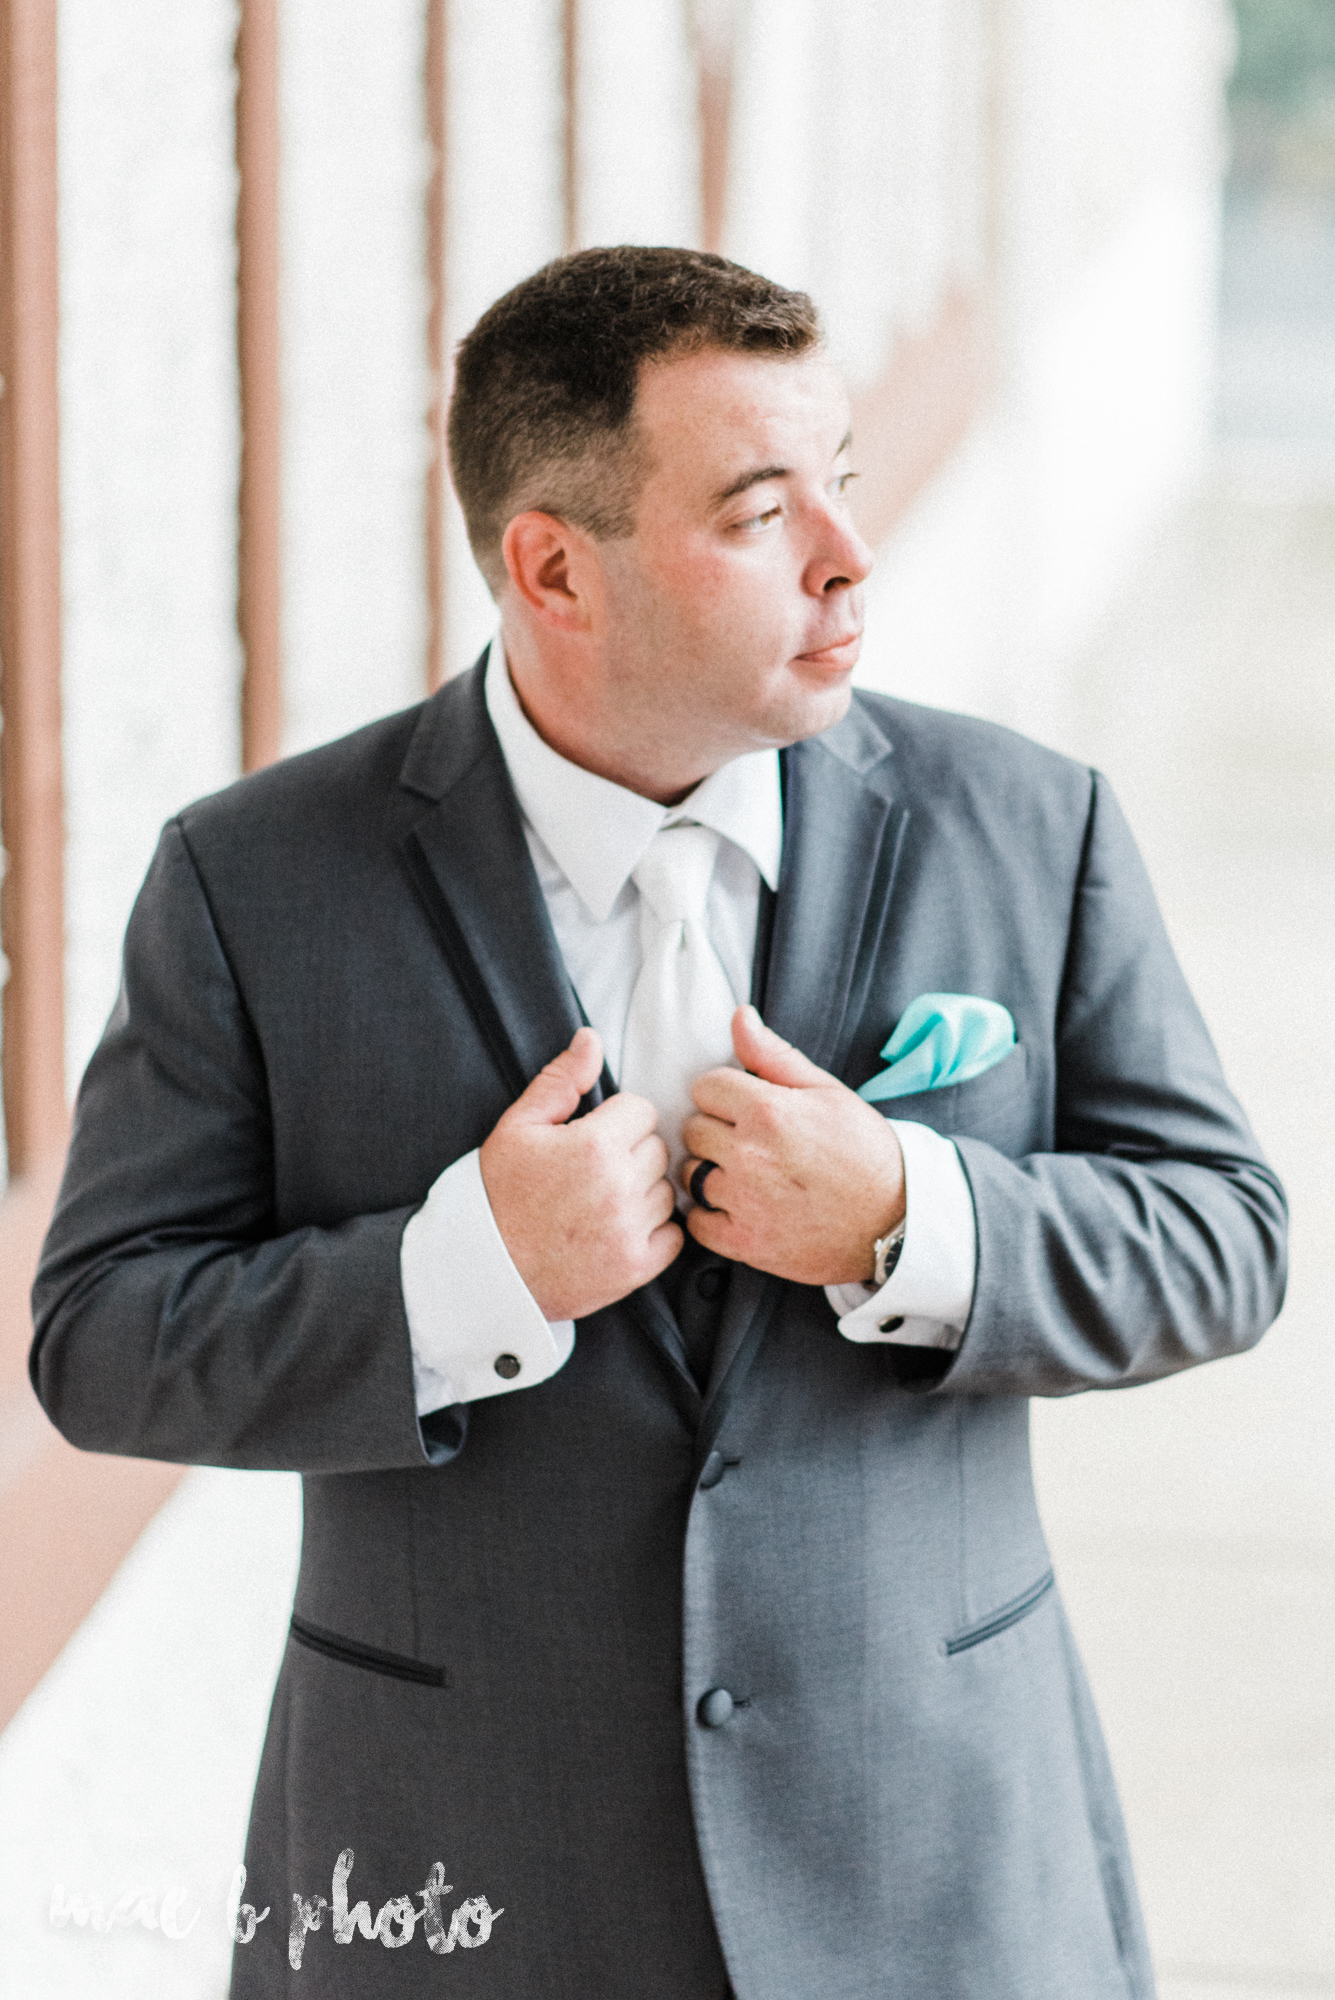 kristy and matt's summer wedding at the embassy in youngstown ohio photographed by youngstown wedding photographer mae b photo-3.jpg